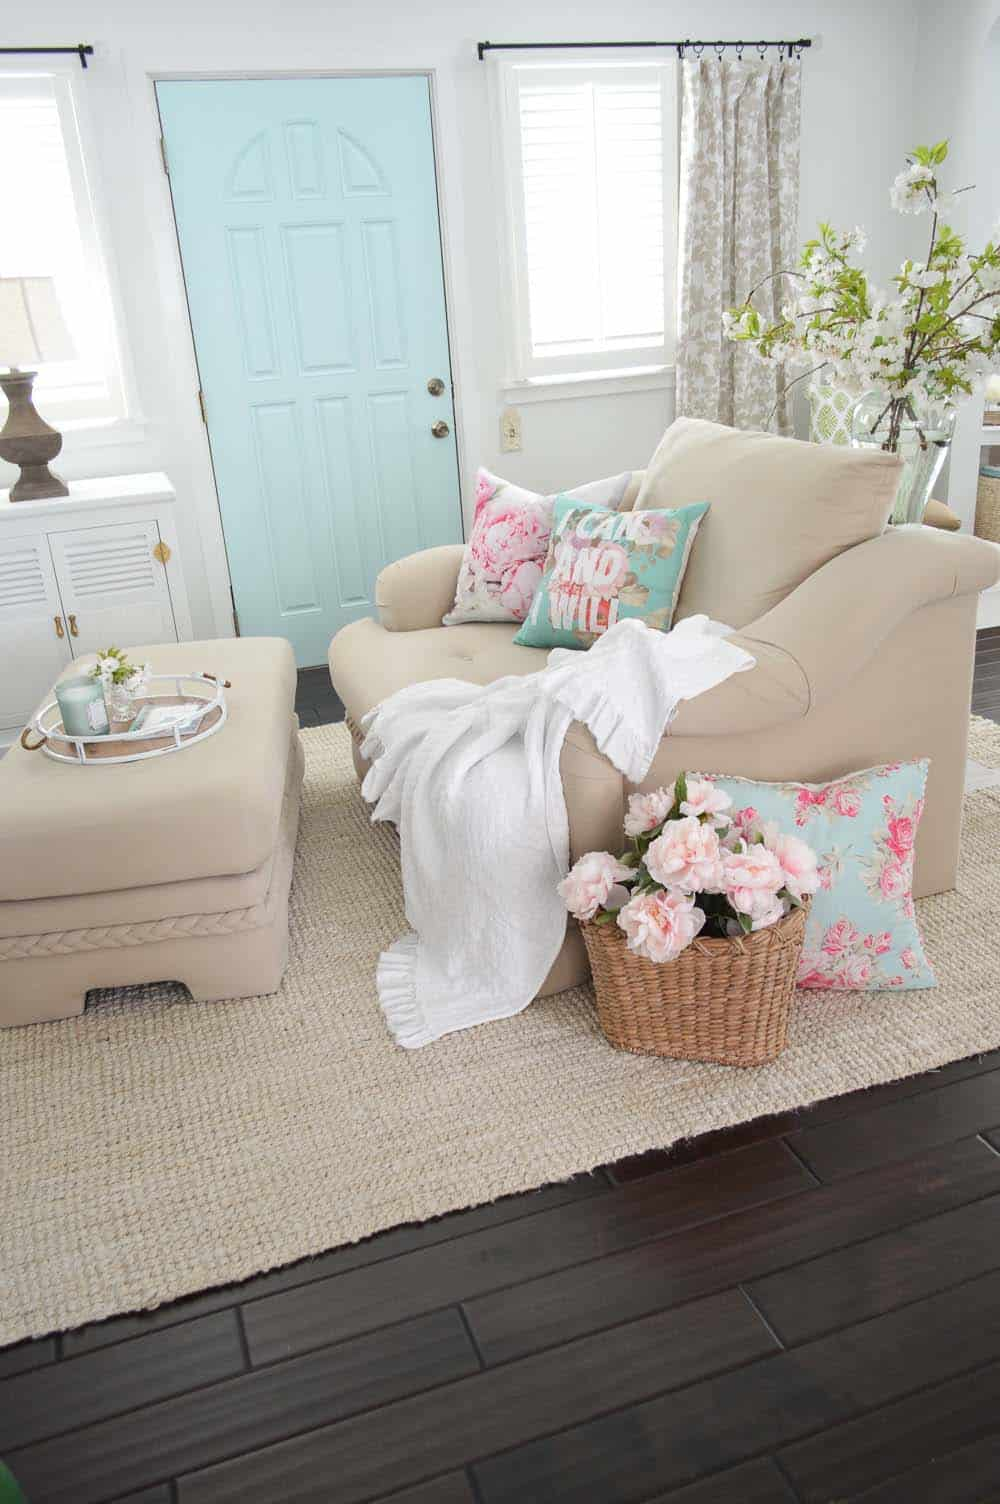 Ideas For Styling Living Spaces For Spring-18-1 Kindesign